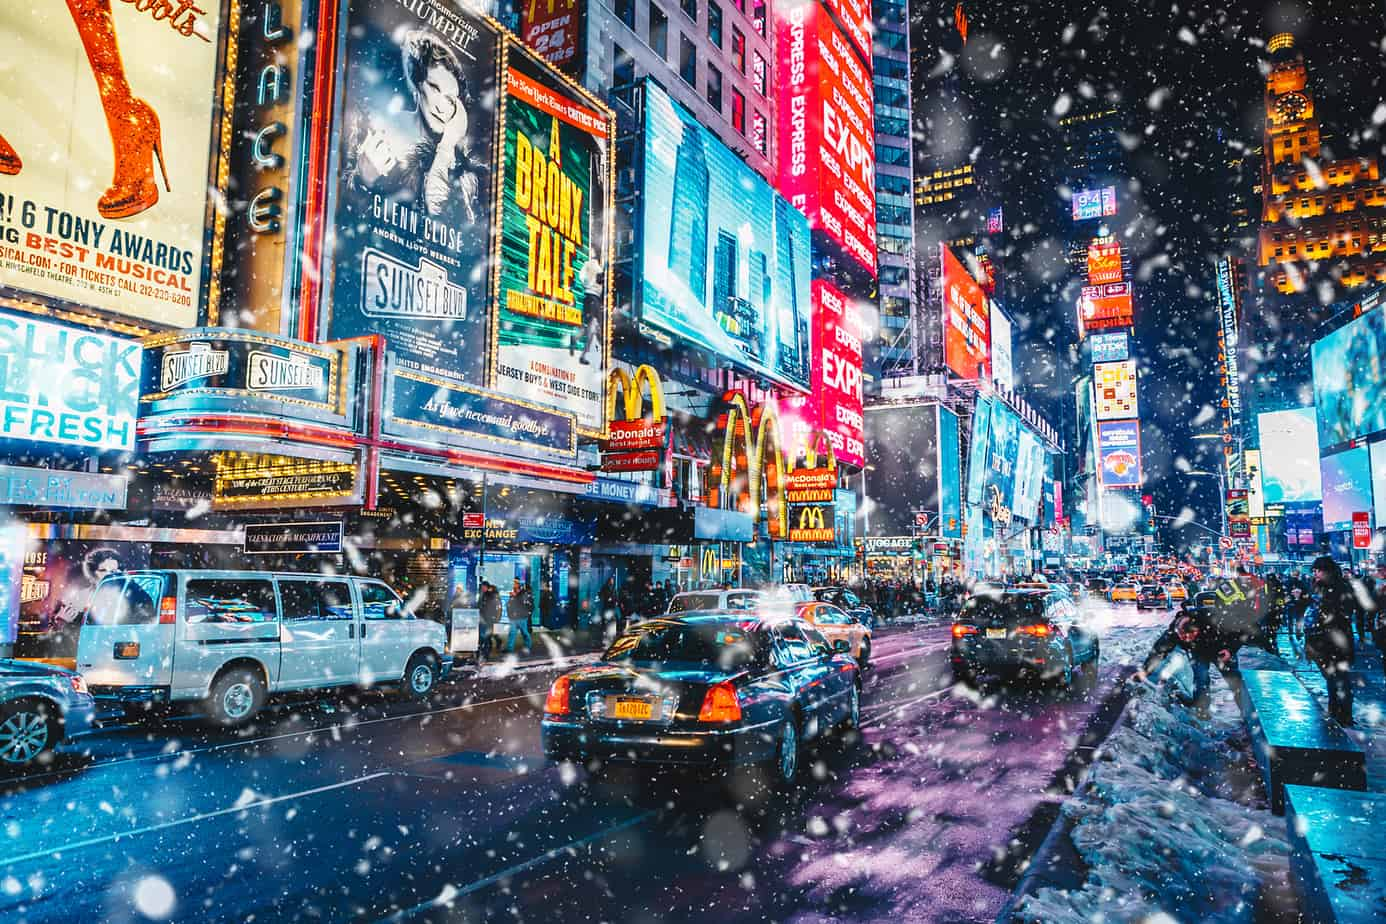 snowy night in times square new york - romantic things to do in NYC